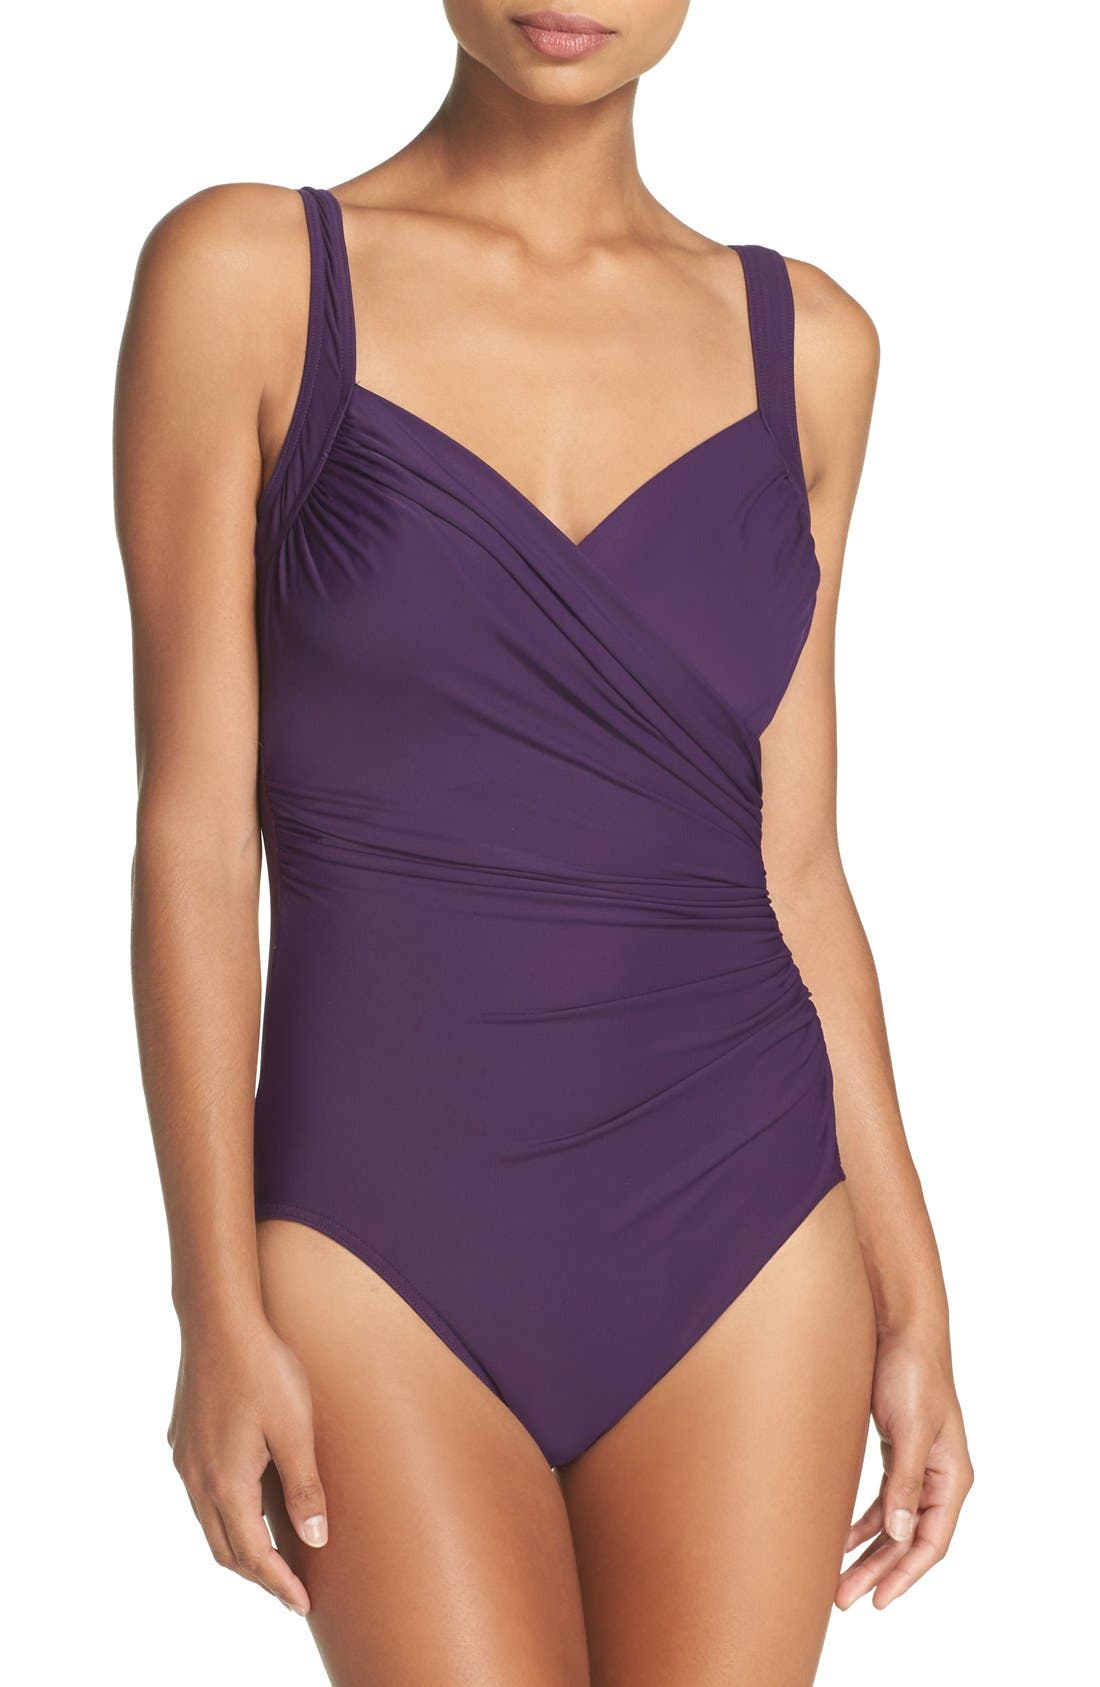 'Sanibel' Underwire One-Piece Swimsuit,                             Main thumbnail 8, color,